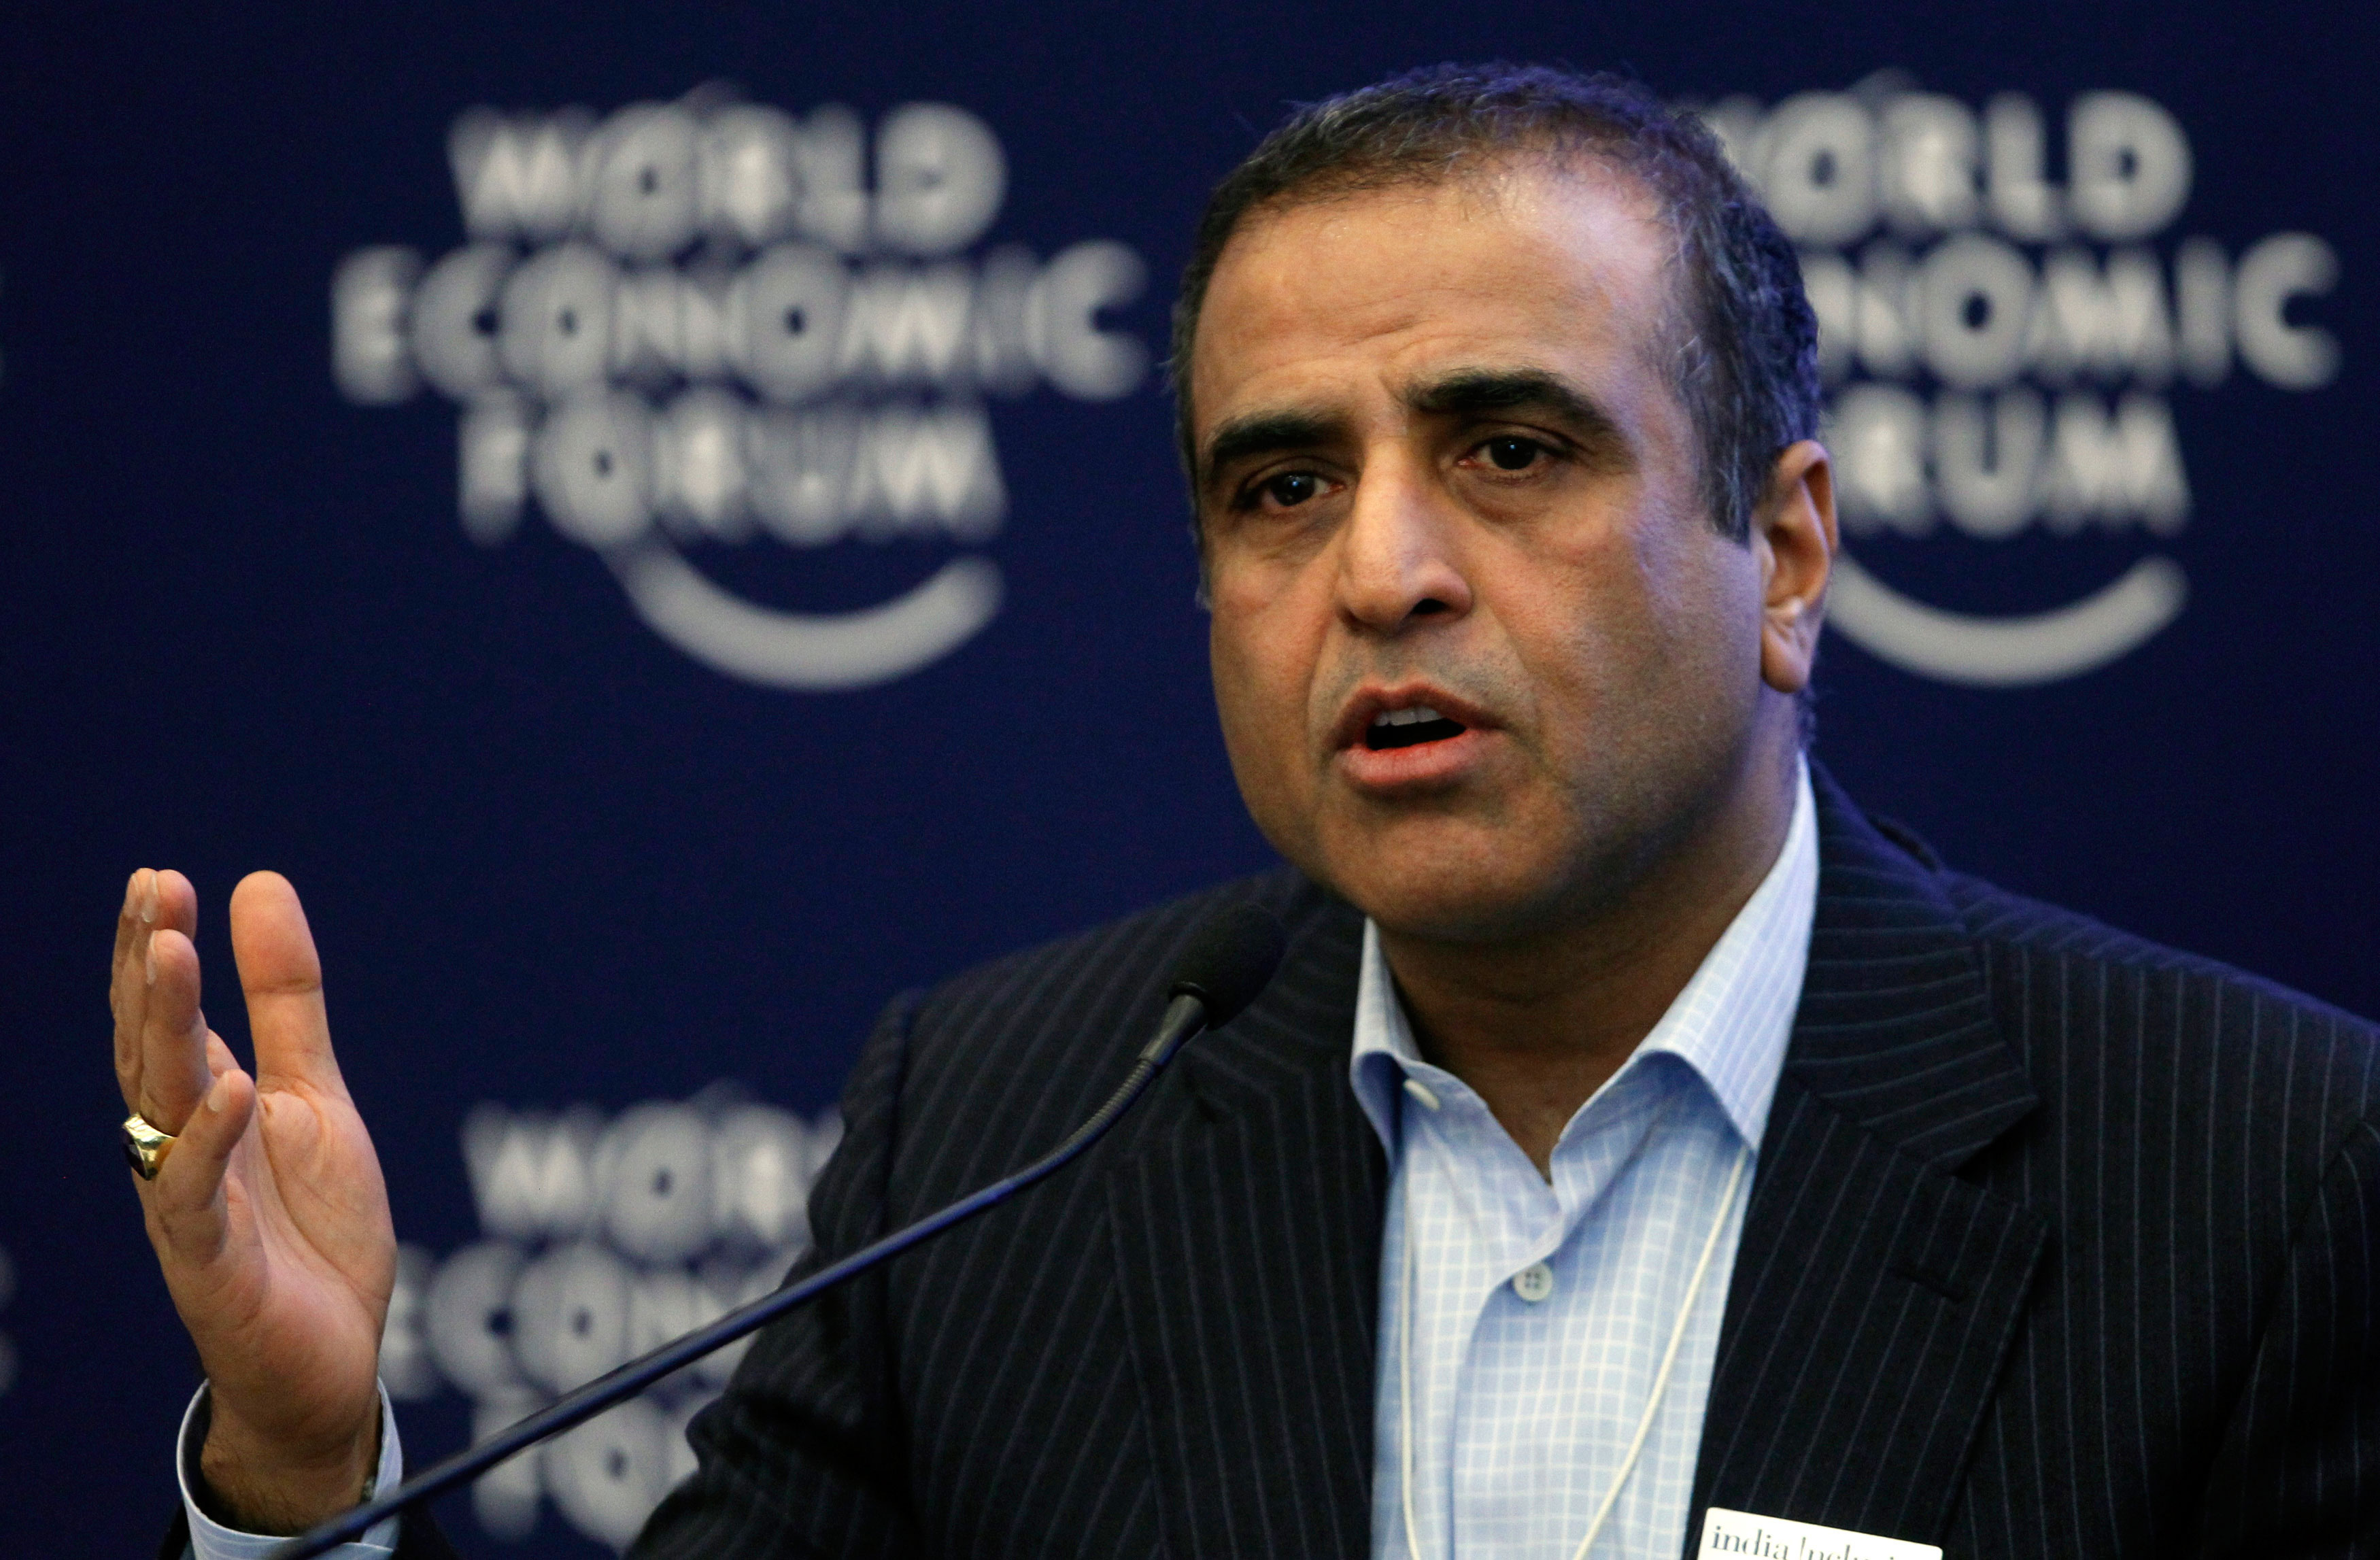 Bharti Airtel may sell operations in four African nations to French telco Orange